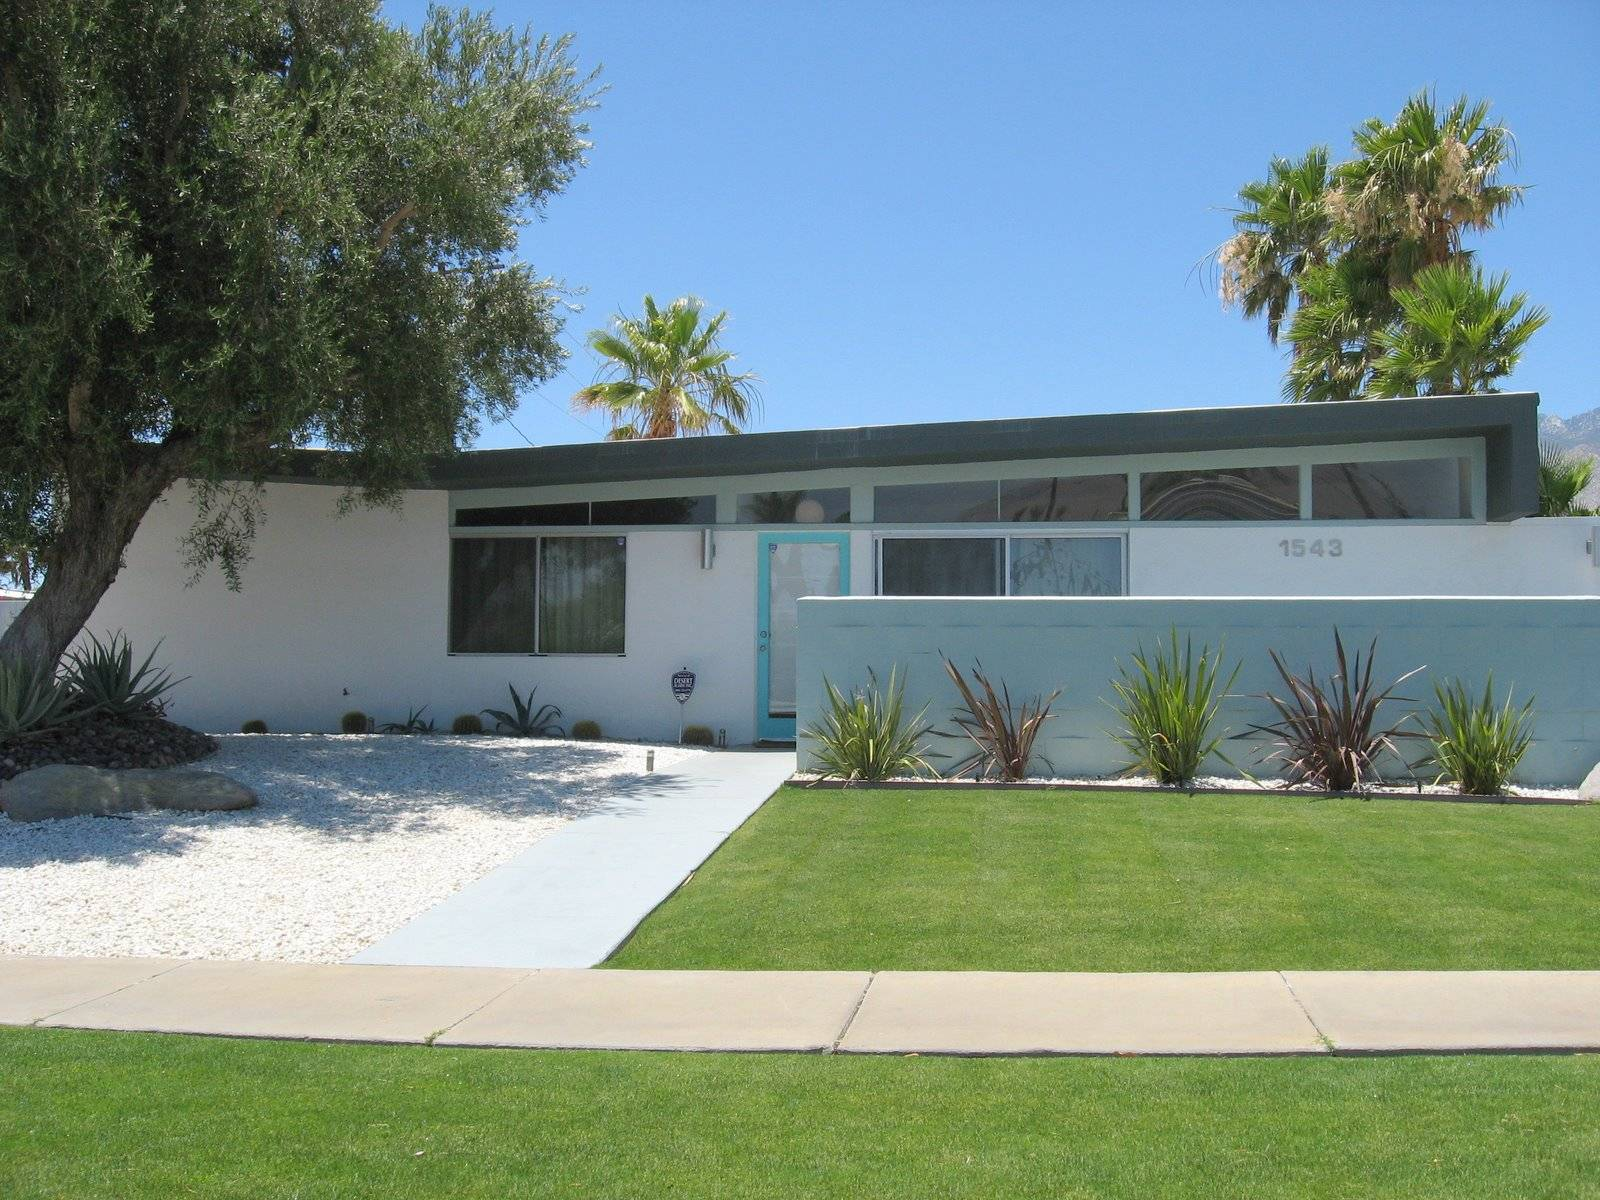 Mid century palm springs homes for sale for Palm springs mid century modern homes for sale